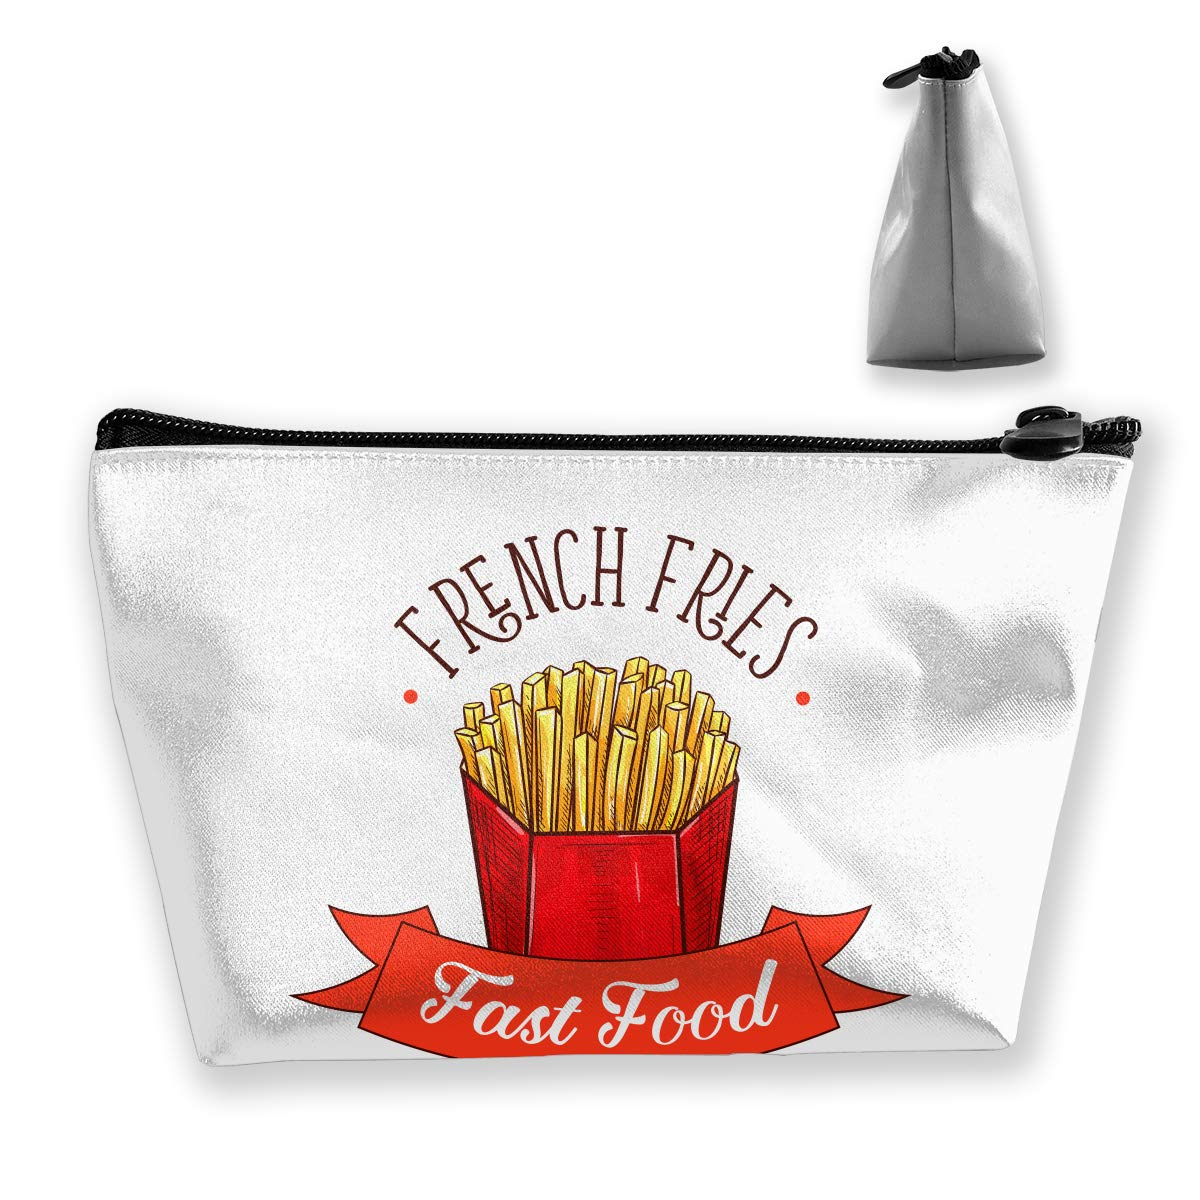 Trapezoid Toiletry Pouch Portable Travel Bag Fries Fast Food Clutch Bag